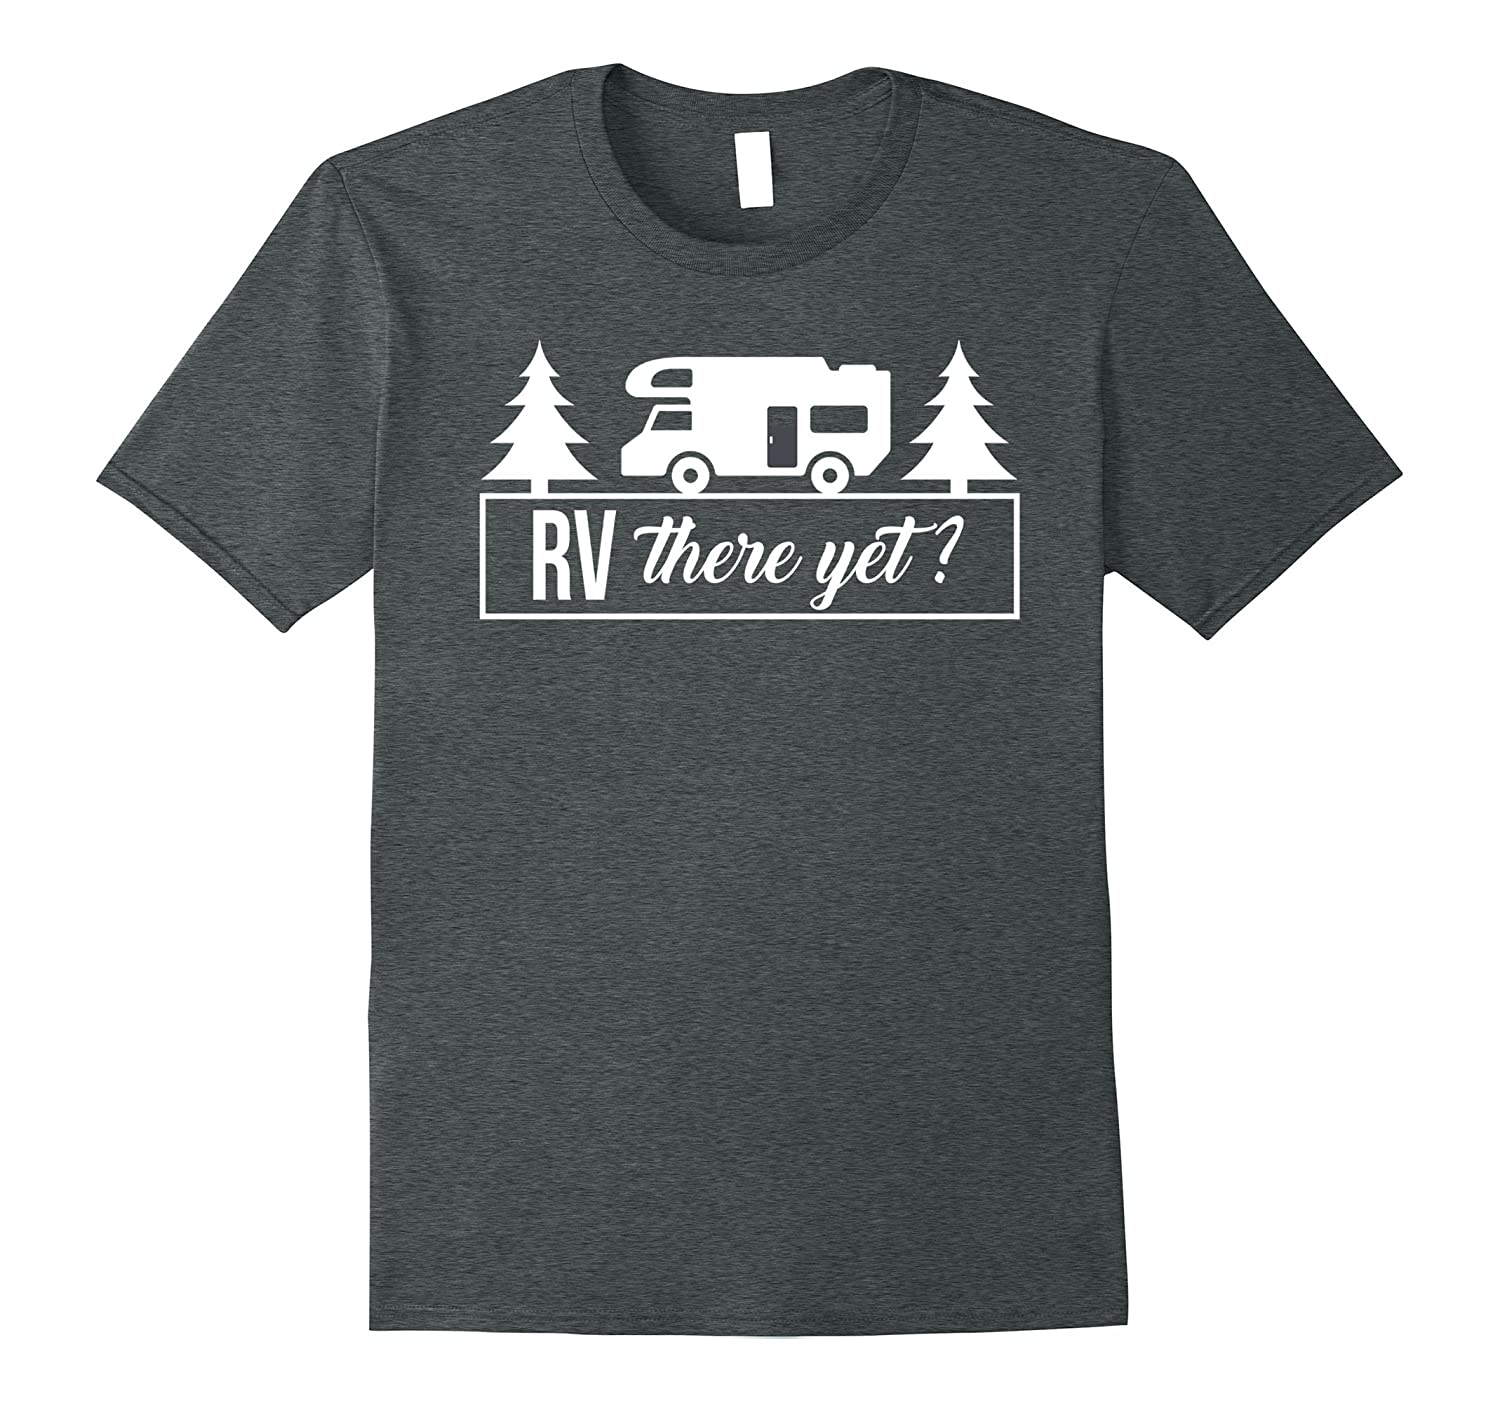 Cool RV there yet tshirt for motor homes owners